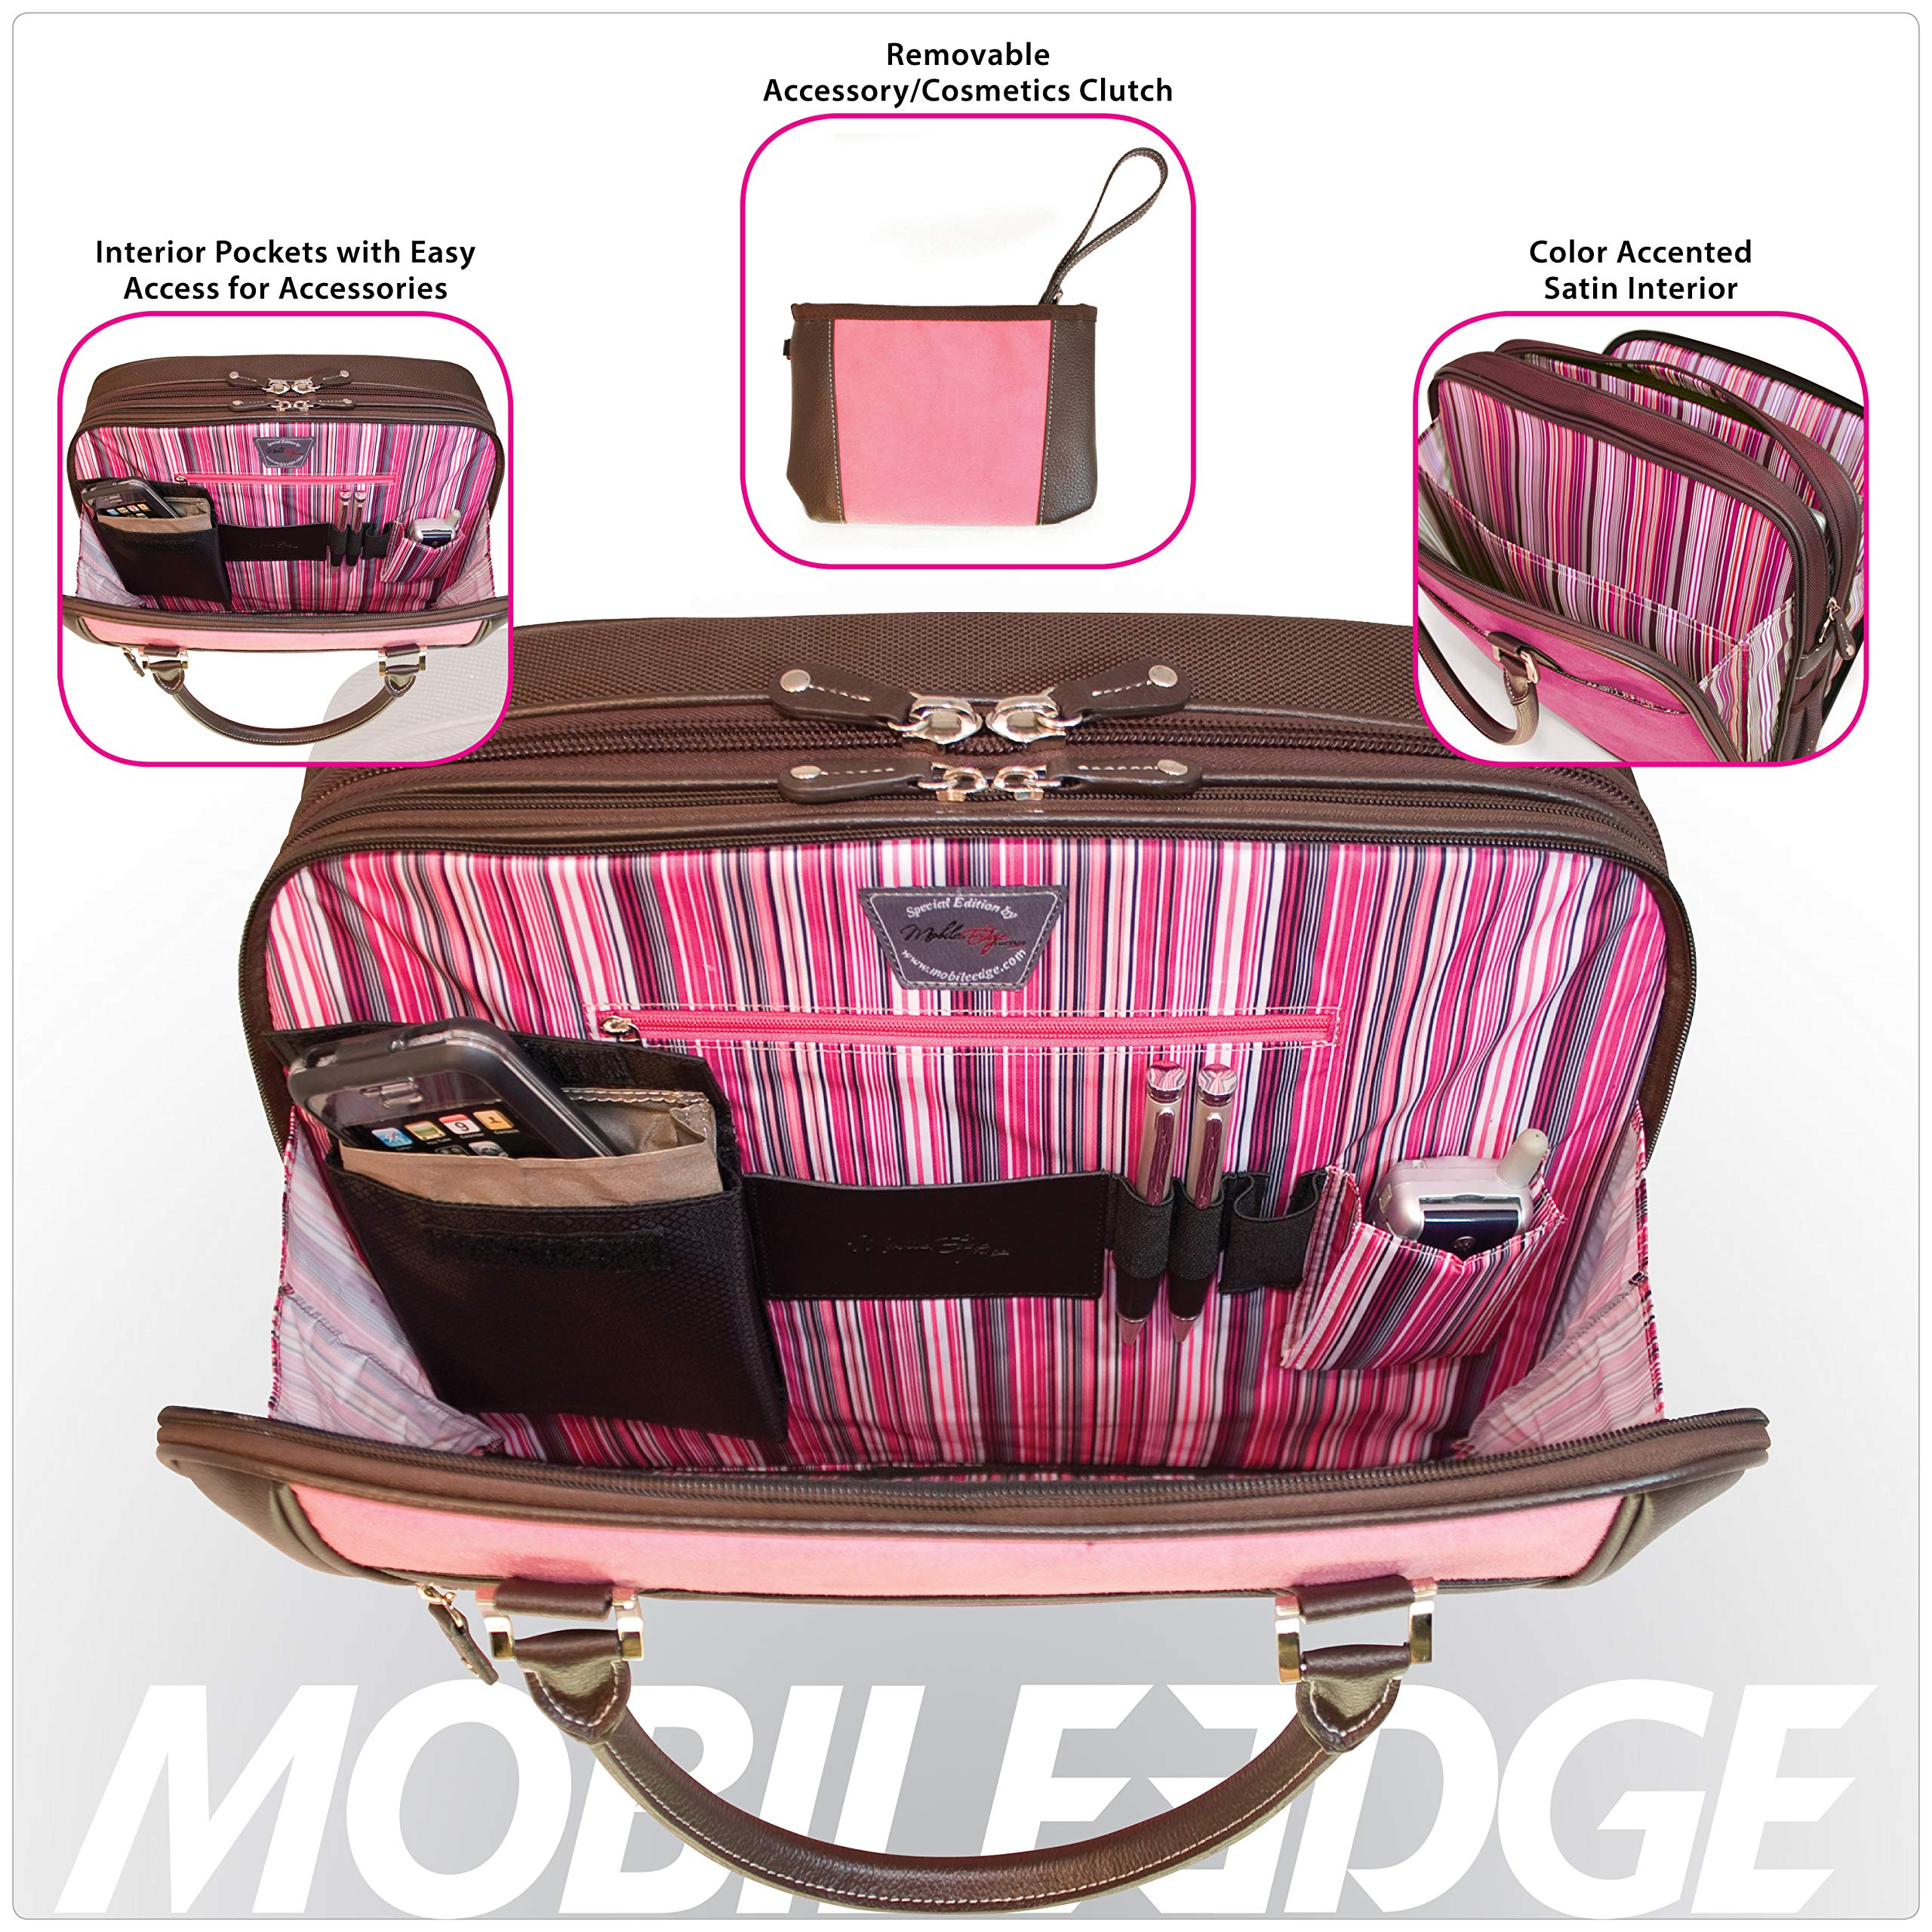 Mobile Edge Women's Black w/Pink, Checkpoint Friendly Element Laptop Briefcase 16 Inch PC, 17 Inch MacBook, Business, Travel MESFEBX by Mobile Edge (Image #4)